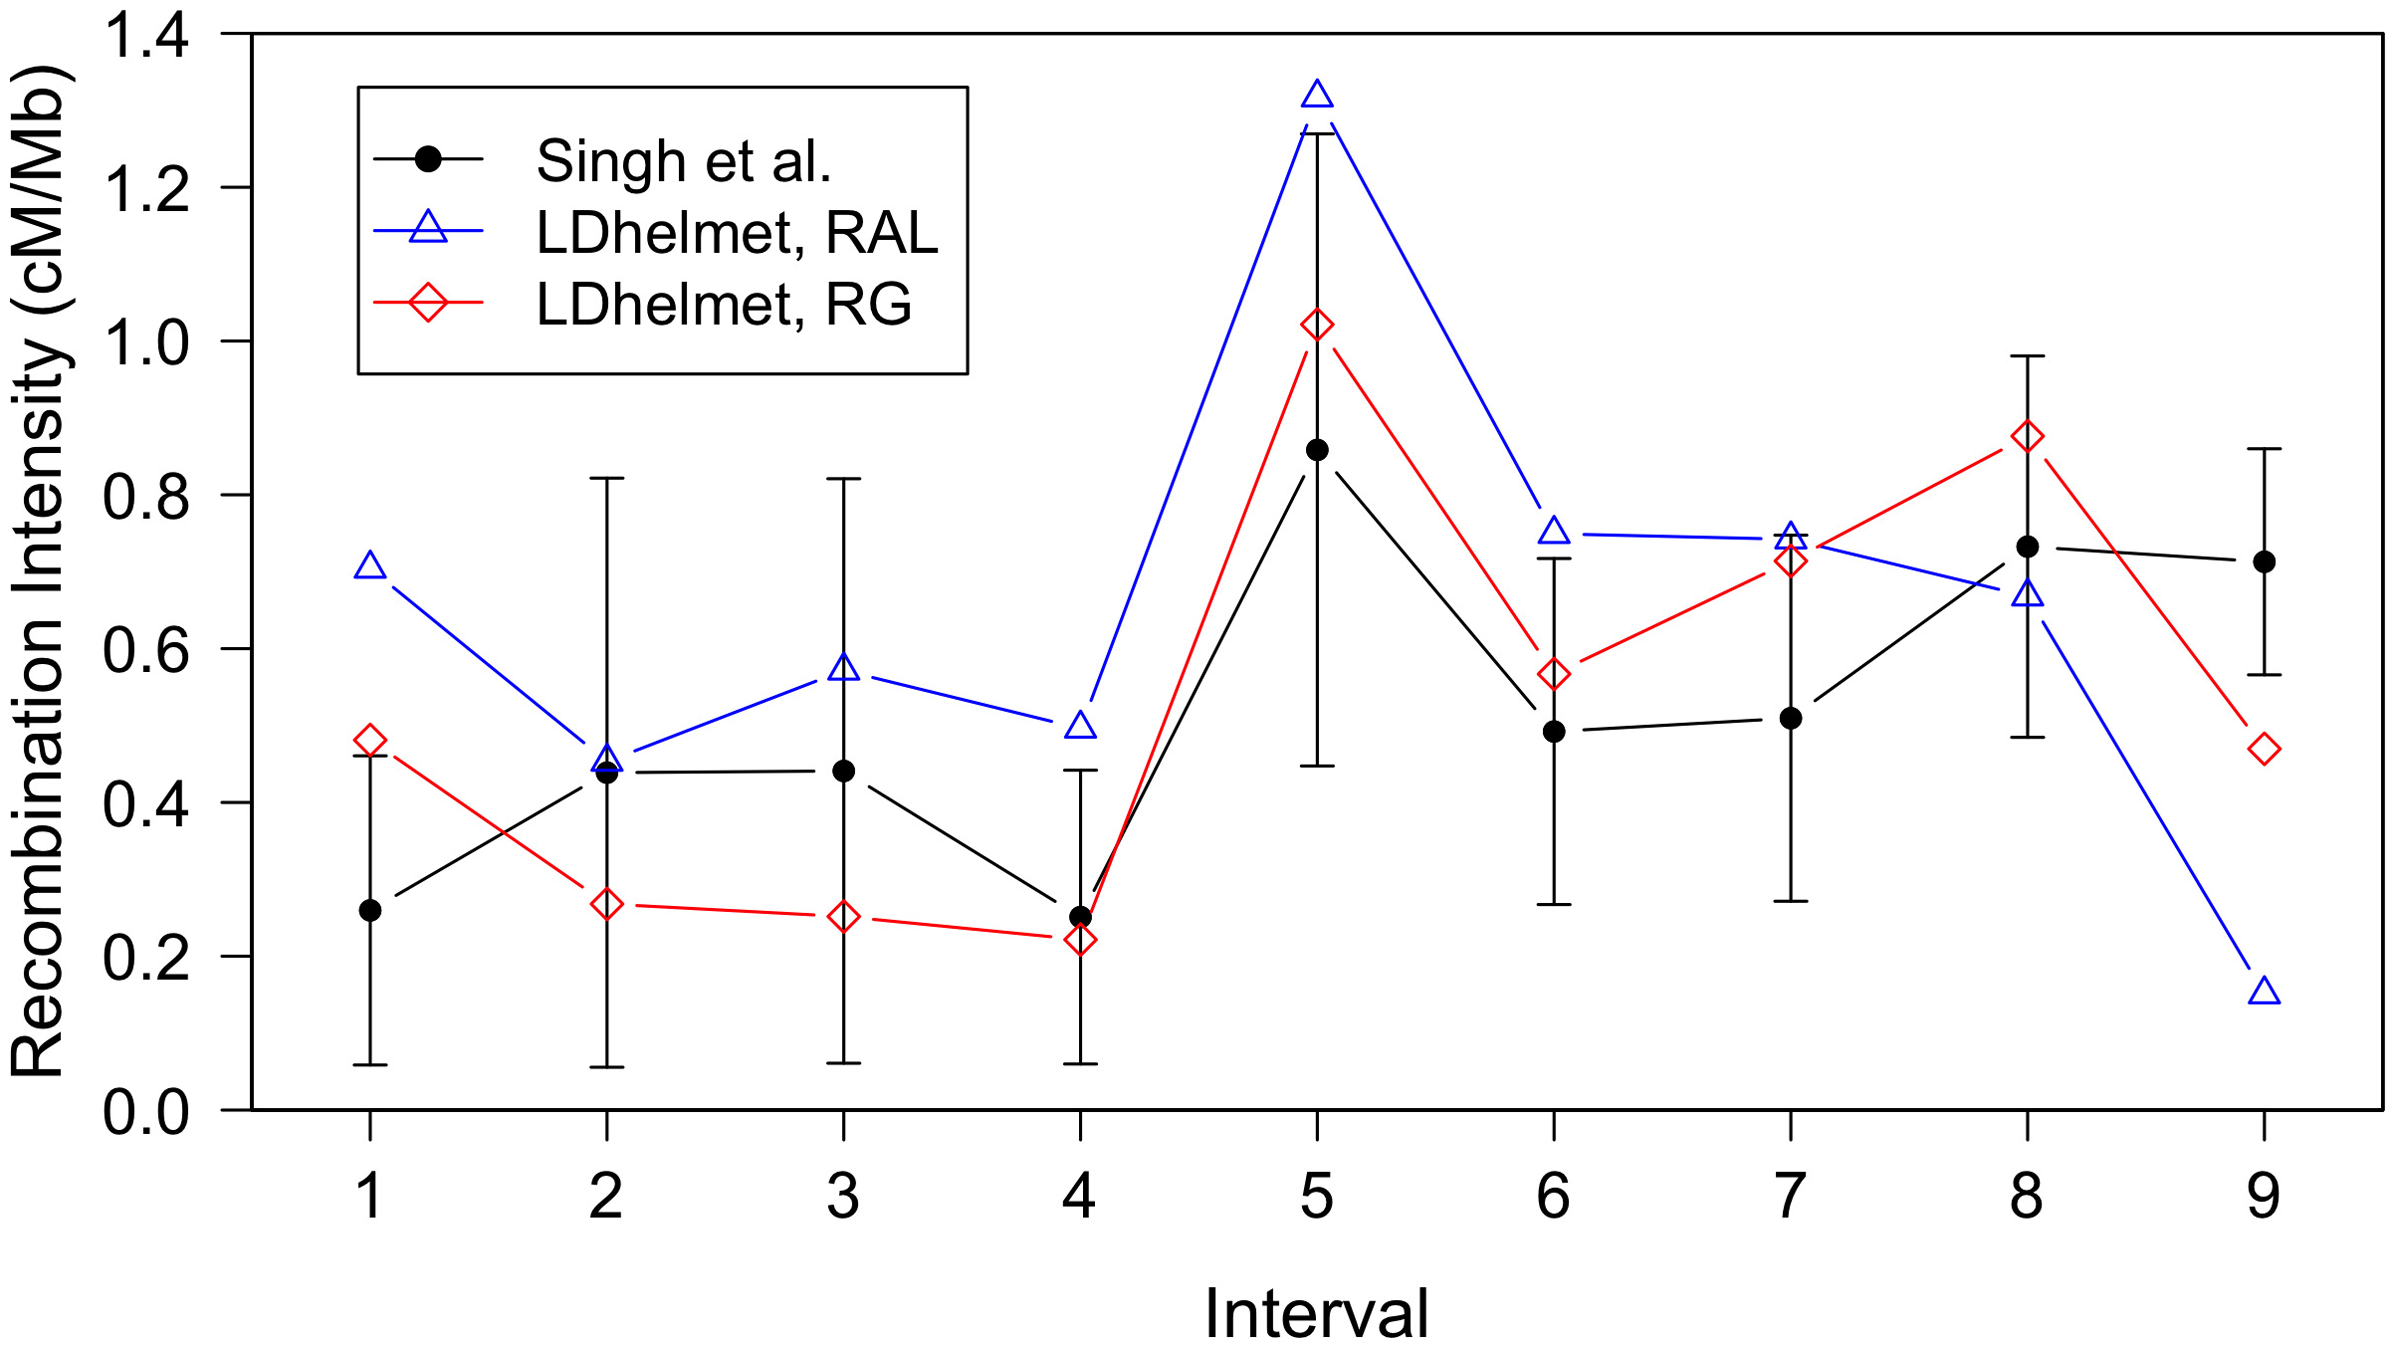 Comparison of LDhelmet estimates to the empirical genetic map of Singh <i>et al</i>.